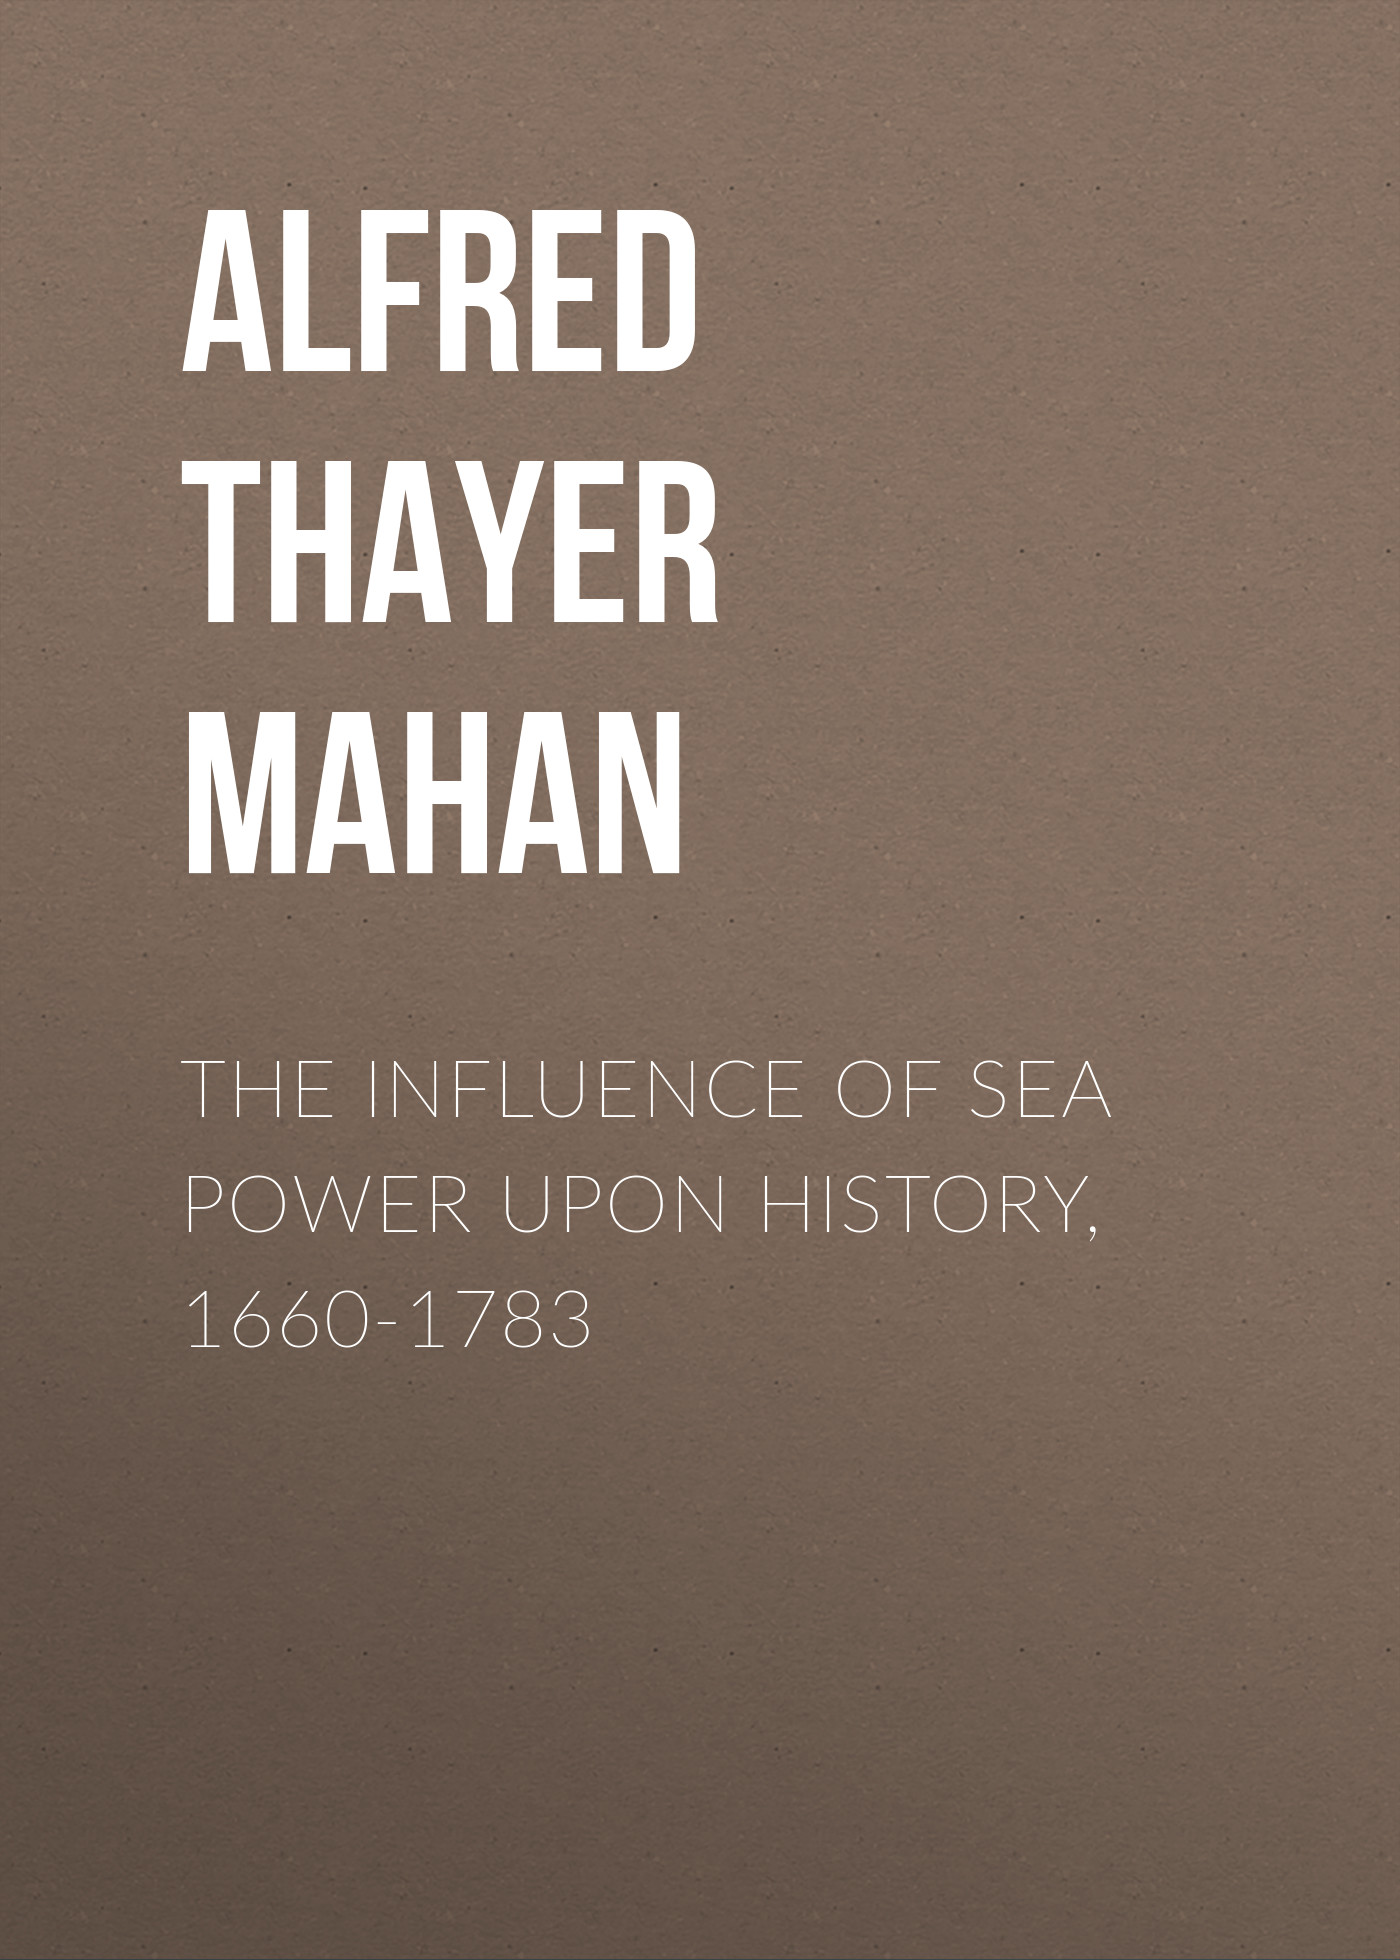 Alfred Thayer Mahan The Influence of Sea Power Upon History, 1660-1783 bad influence